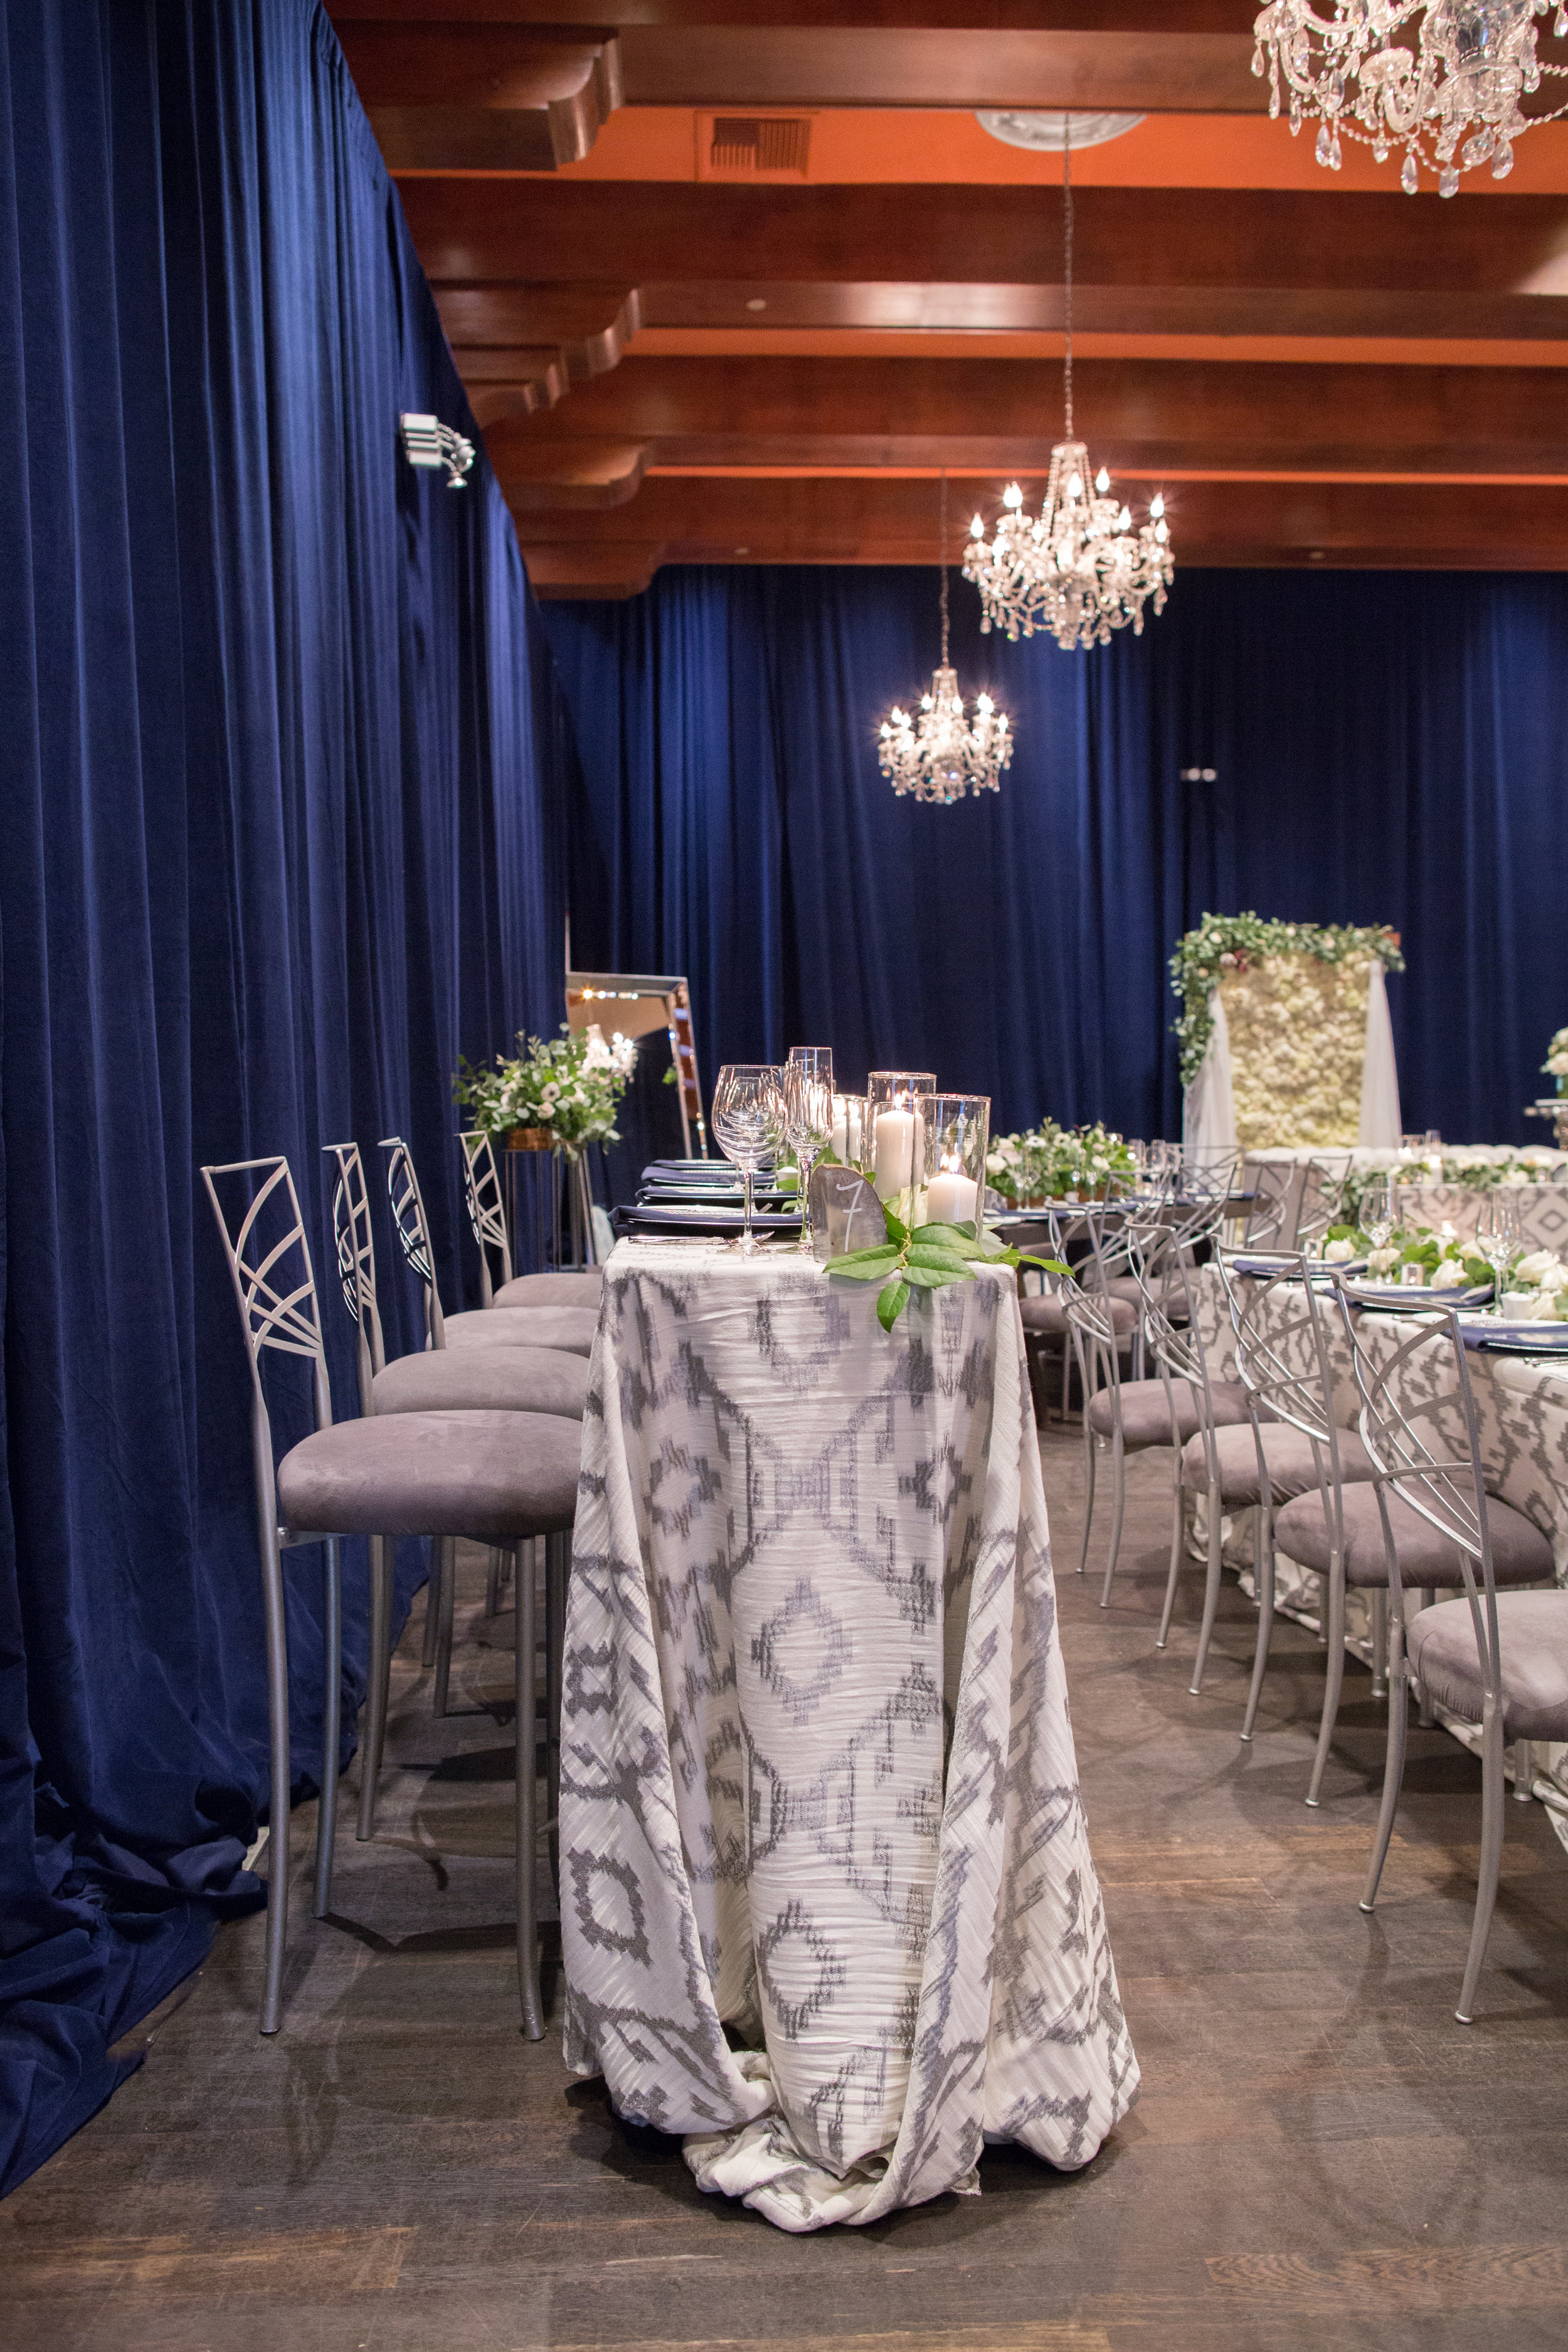 43 wedding reception blue velvet wall dramatic wedding reception raised head table white wedding flowers chandelier on wood beam ceiling Life Design Events photos by Melissa Jill Photography.jpg